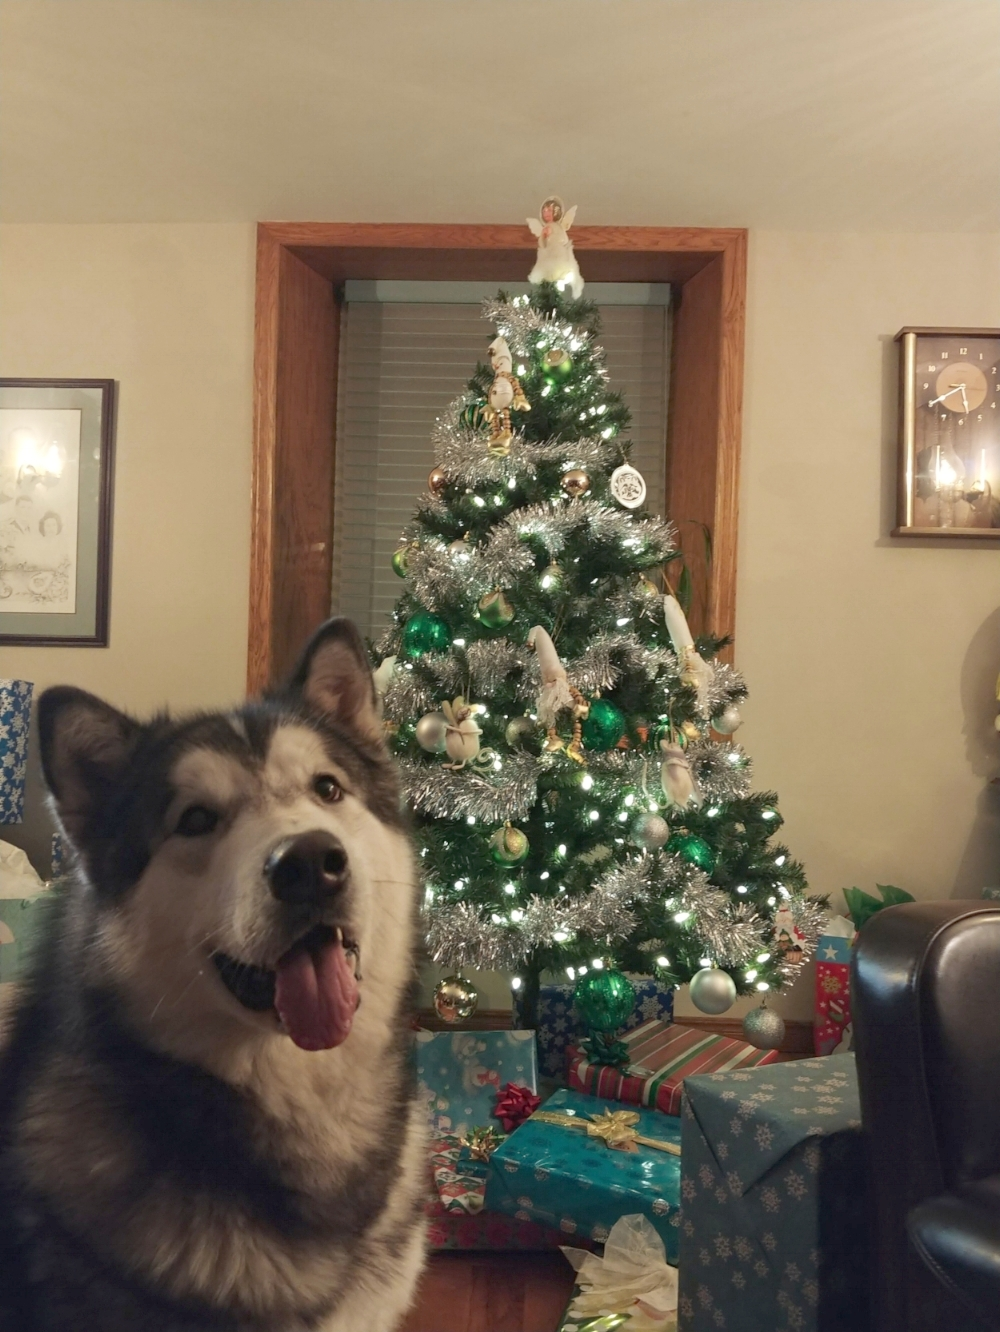 Meeko is excited for the holidays!